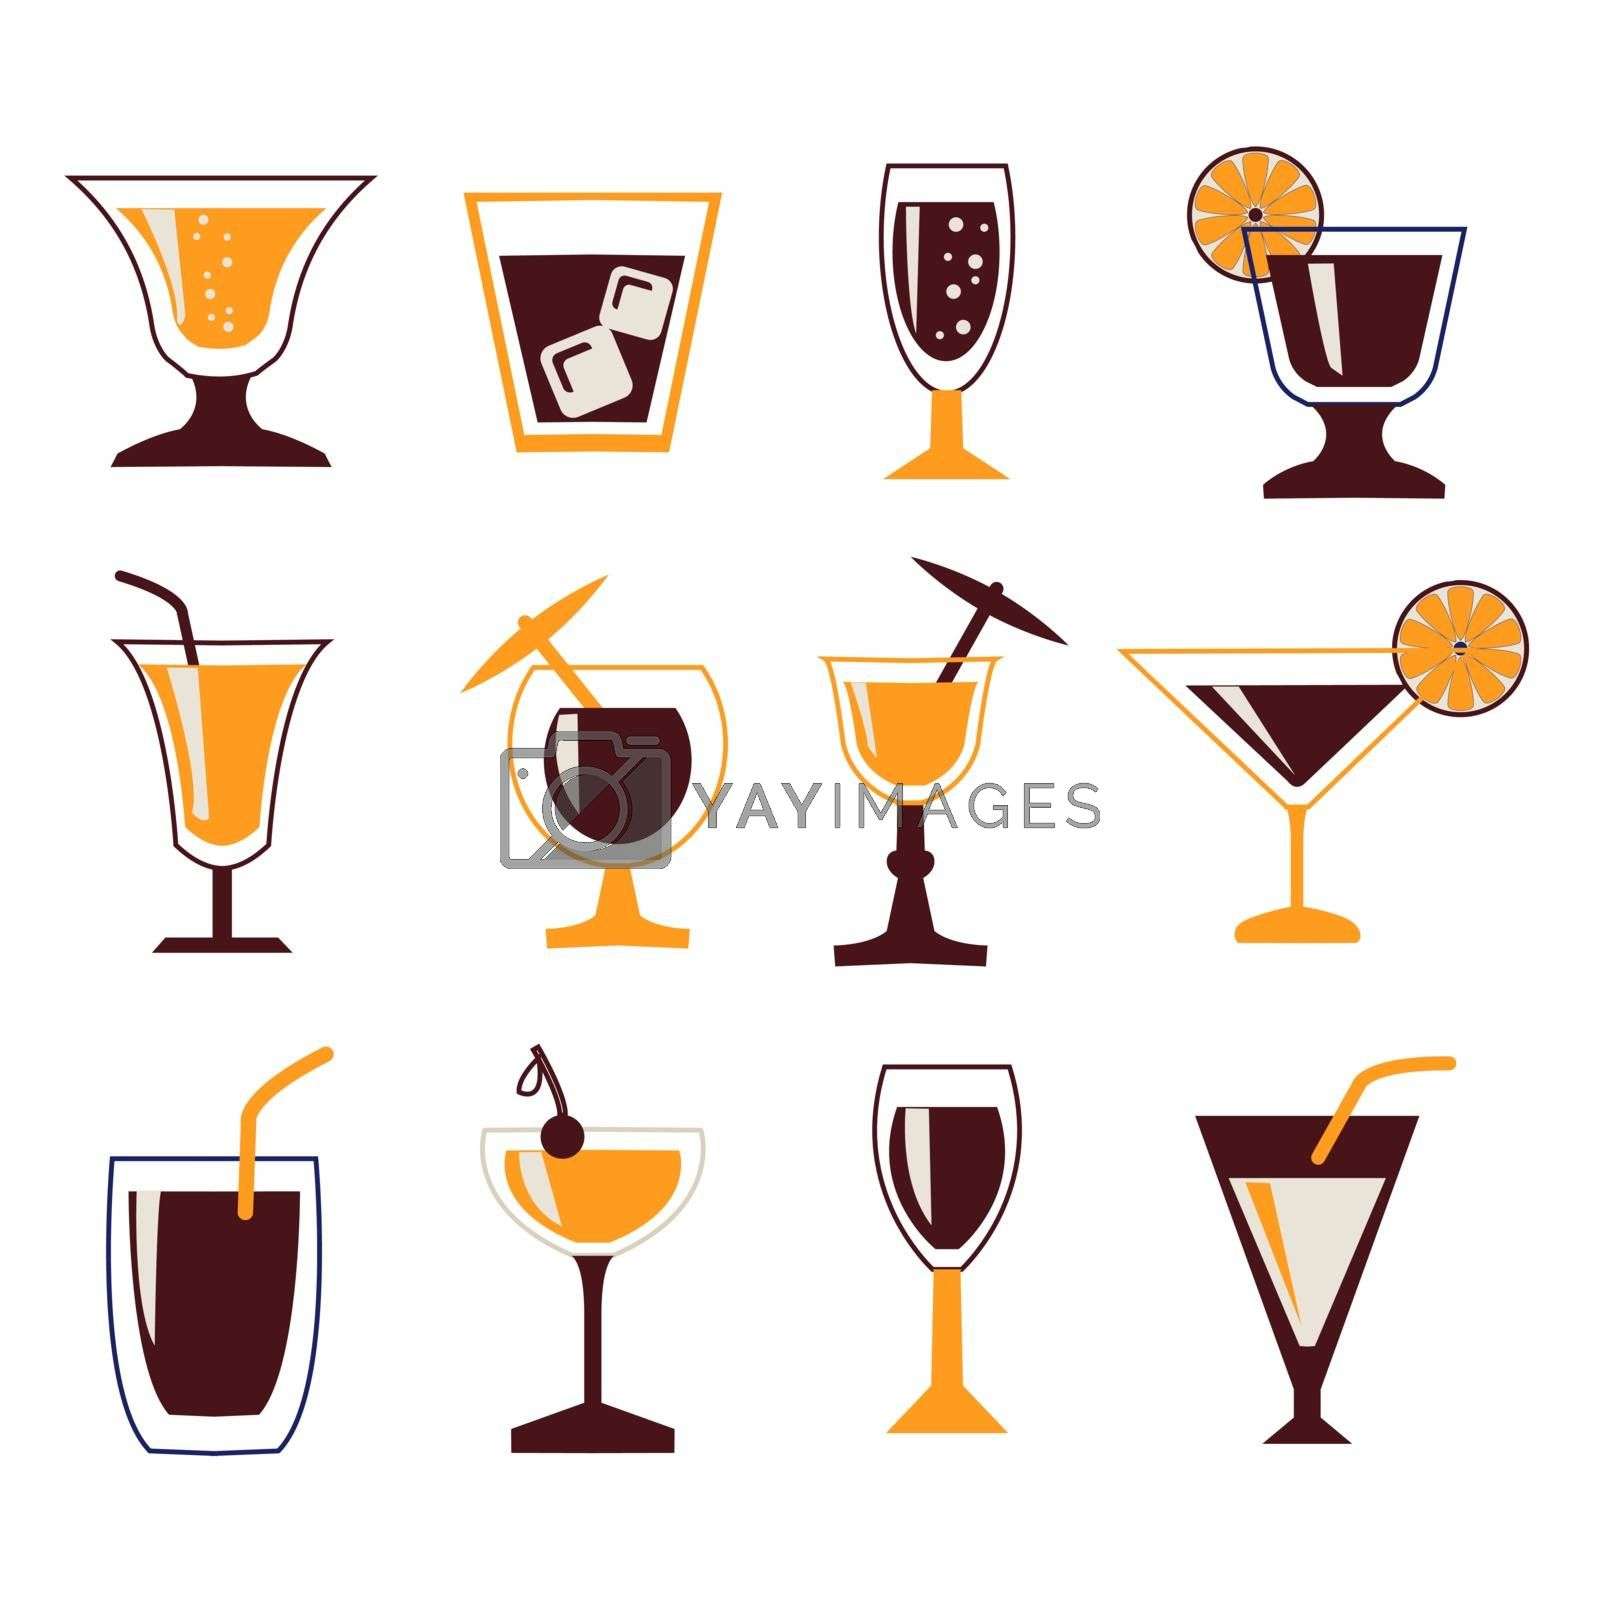 vector set silhouettes of Cocktail glasses. Drinks icon set